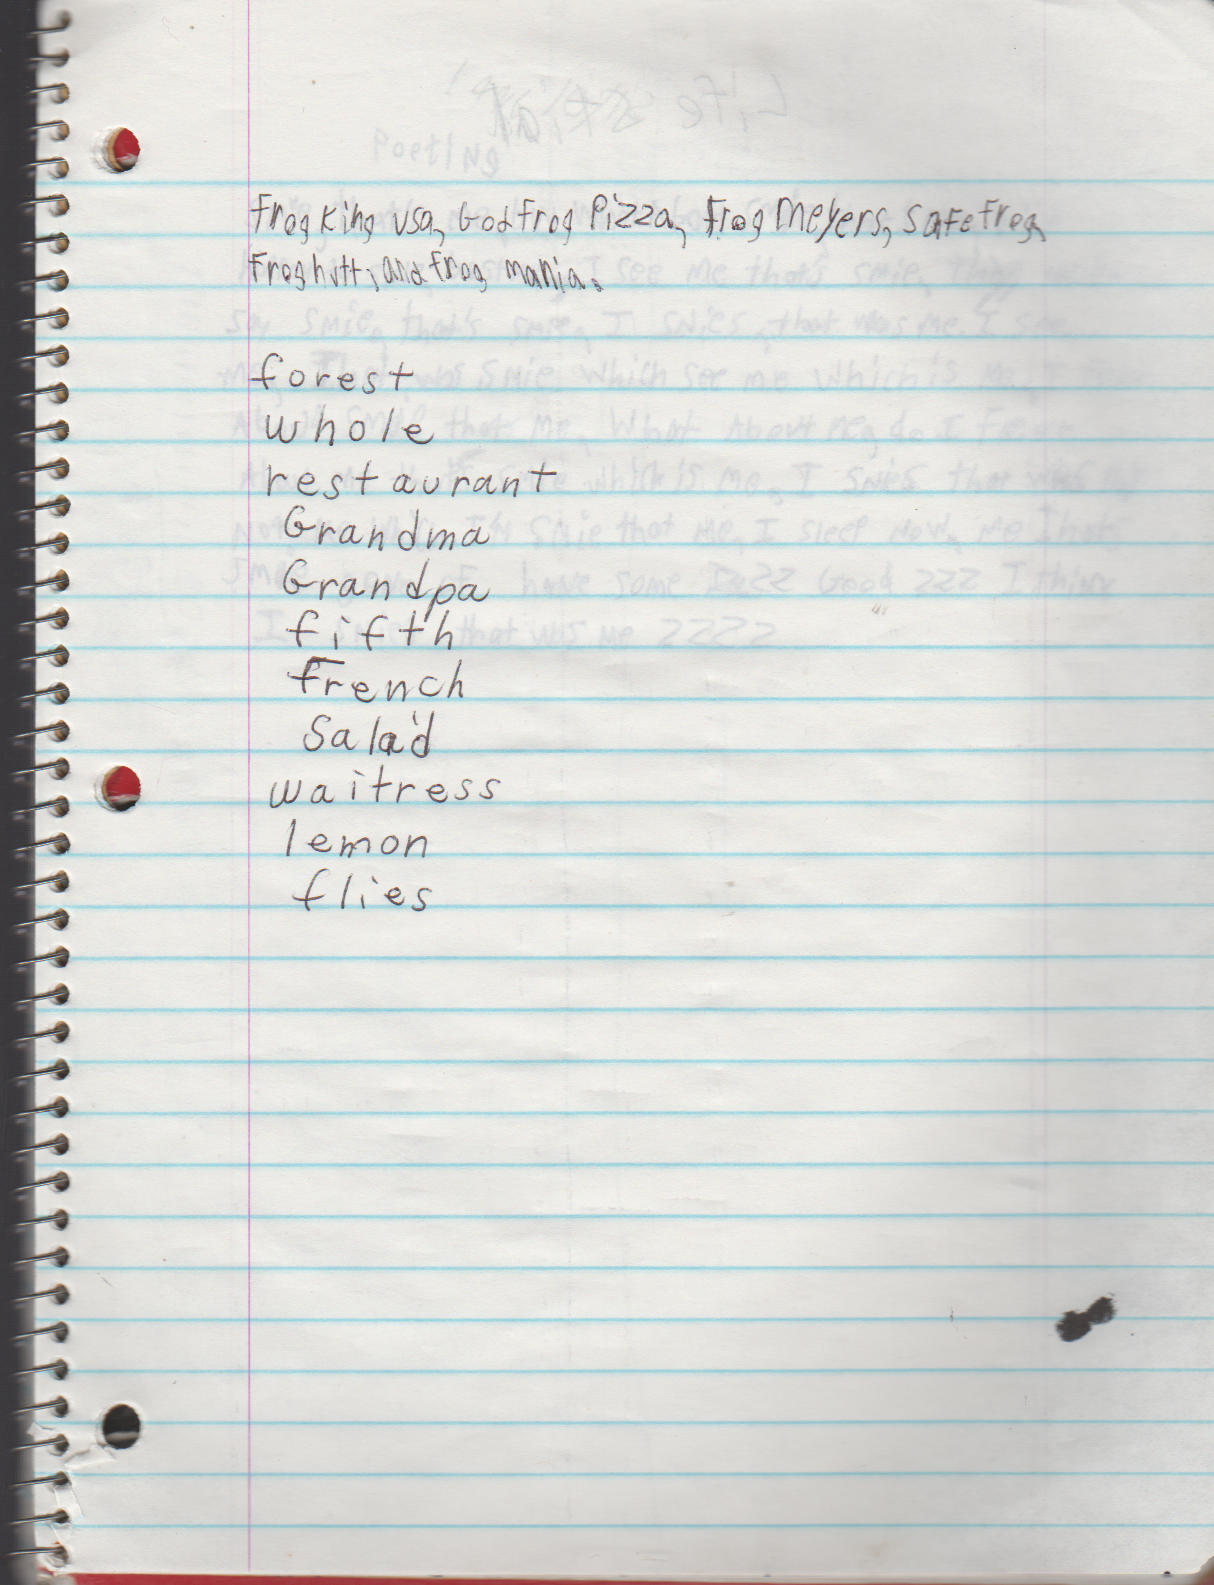 1996-08-18 - Saturday - 11 yr old Joey Arnold's School Book, dates through to 1998 apx, mostly 96, Writings, Drawings, Etc-084.png